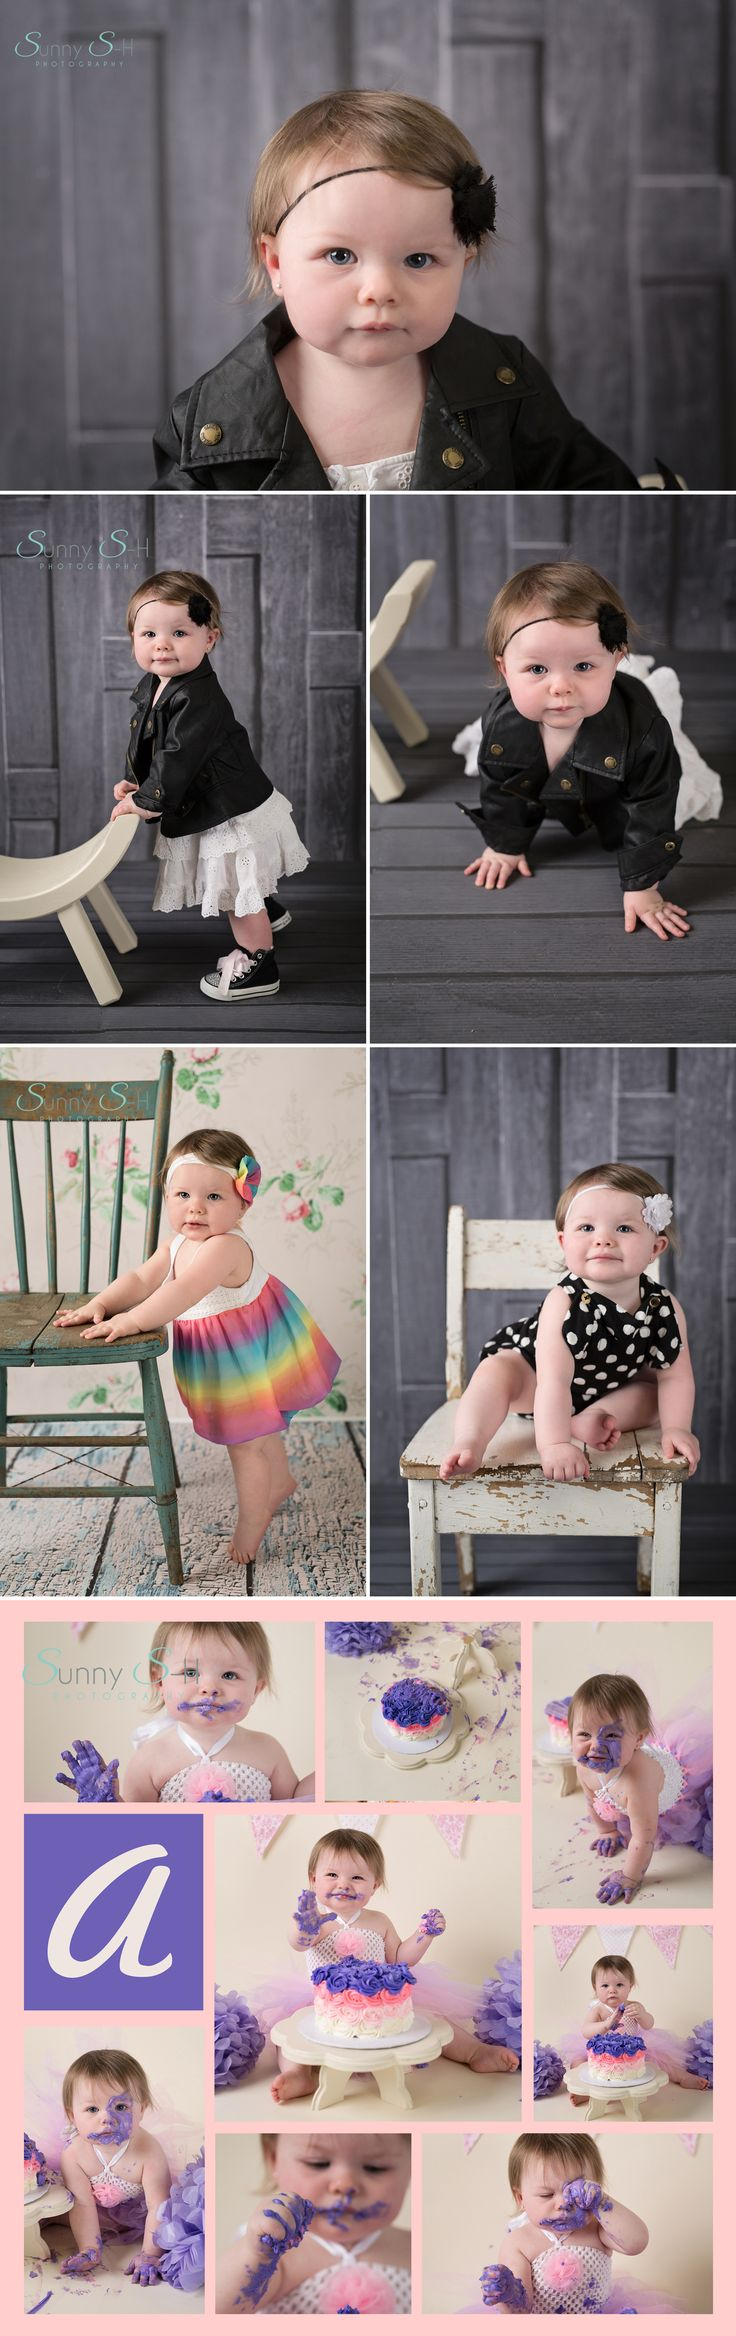 one year old baby stage session in studio with cake smash.  Winnipeg baby photography